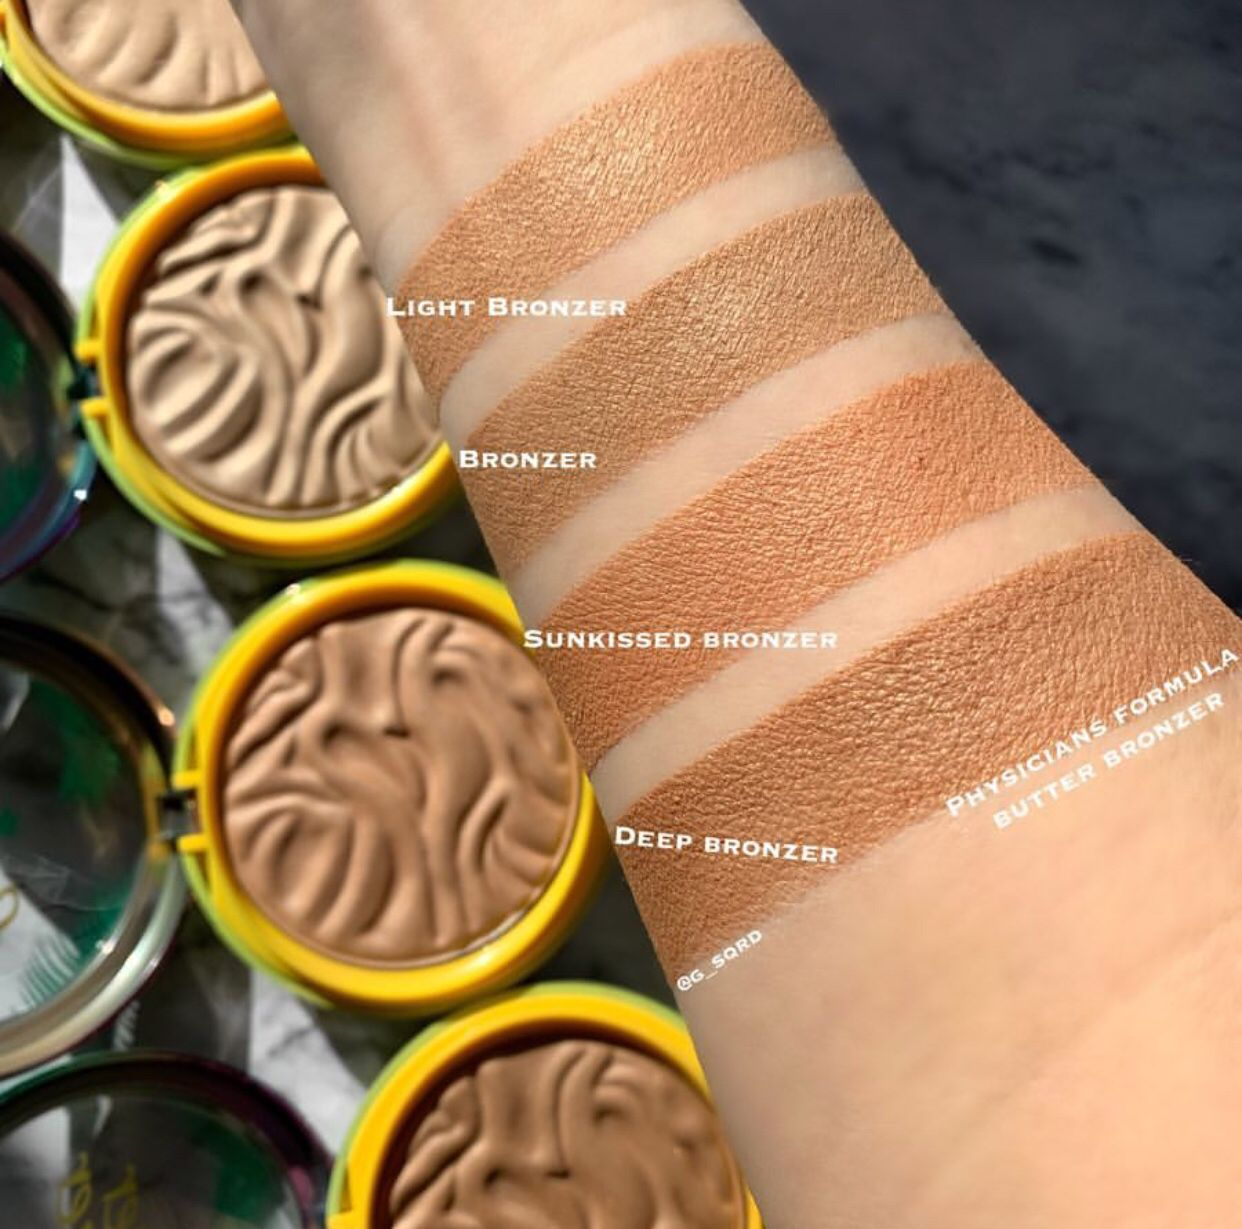 New Shades! Physicians Formula Butter Bronzers